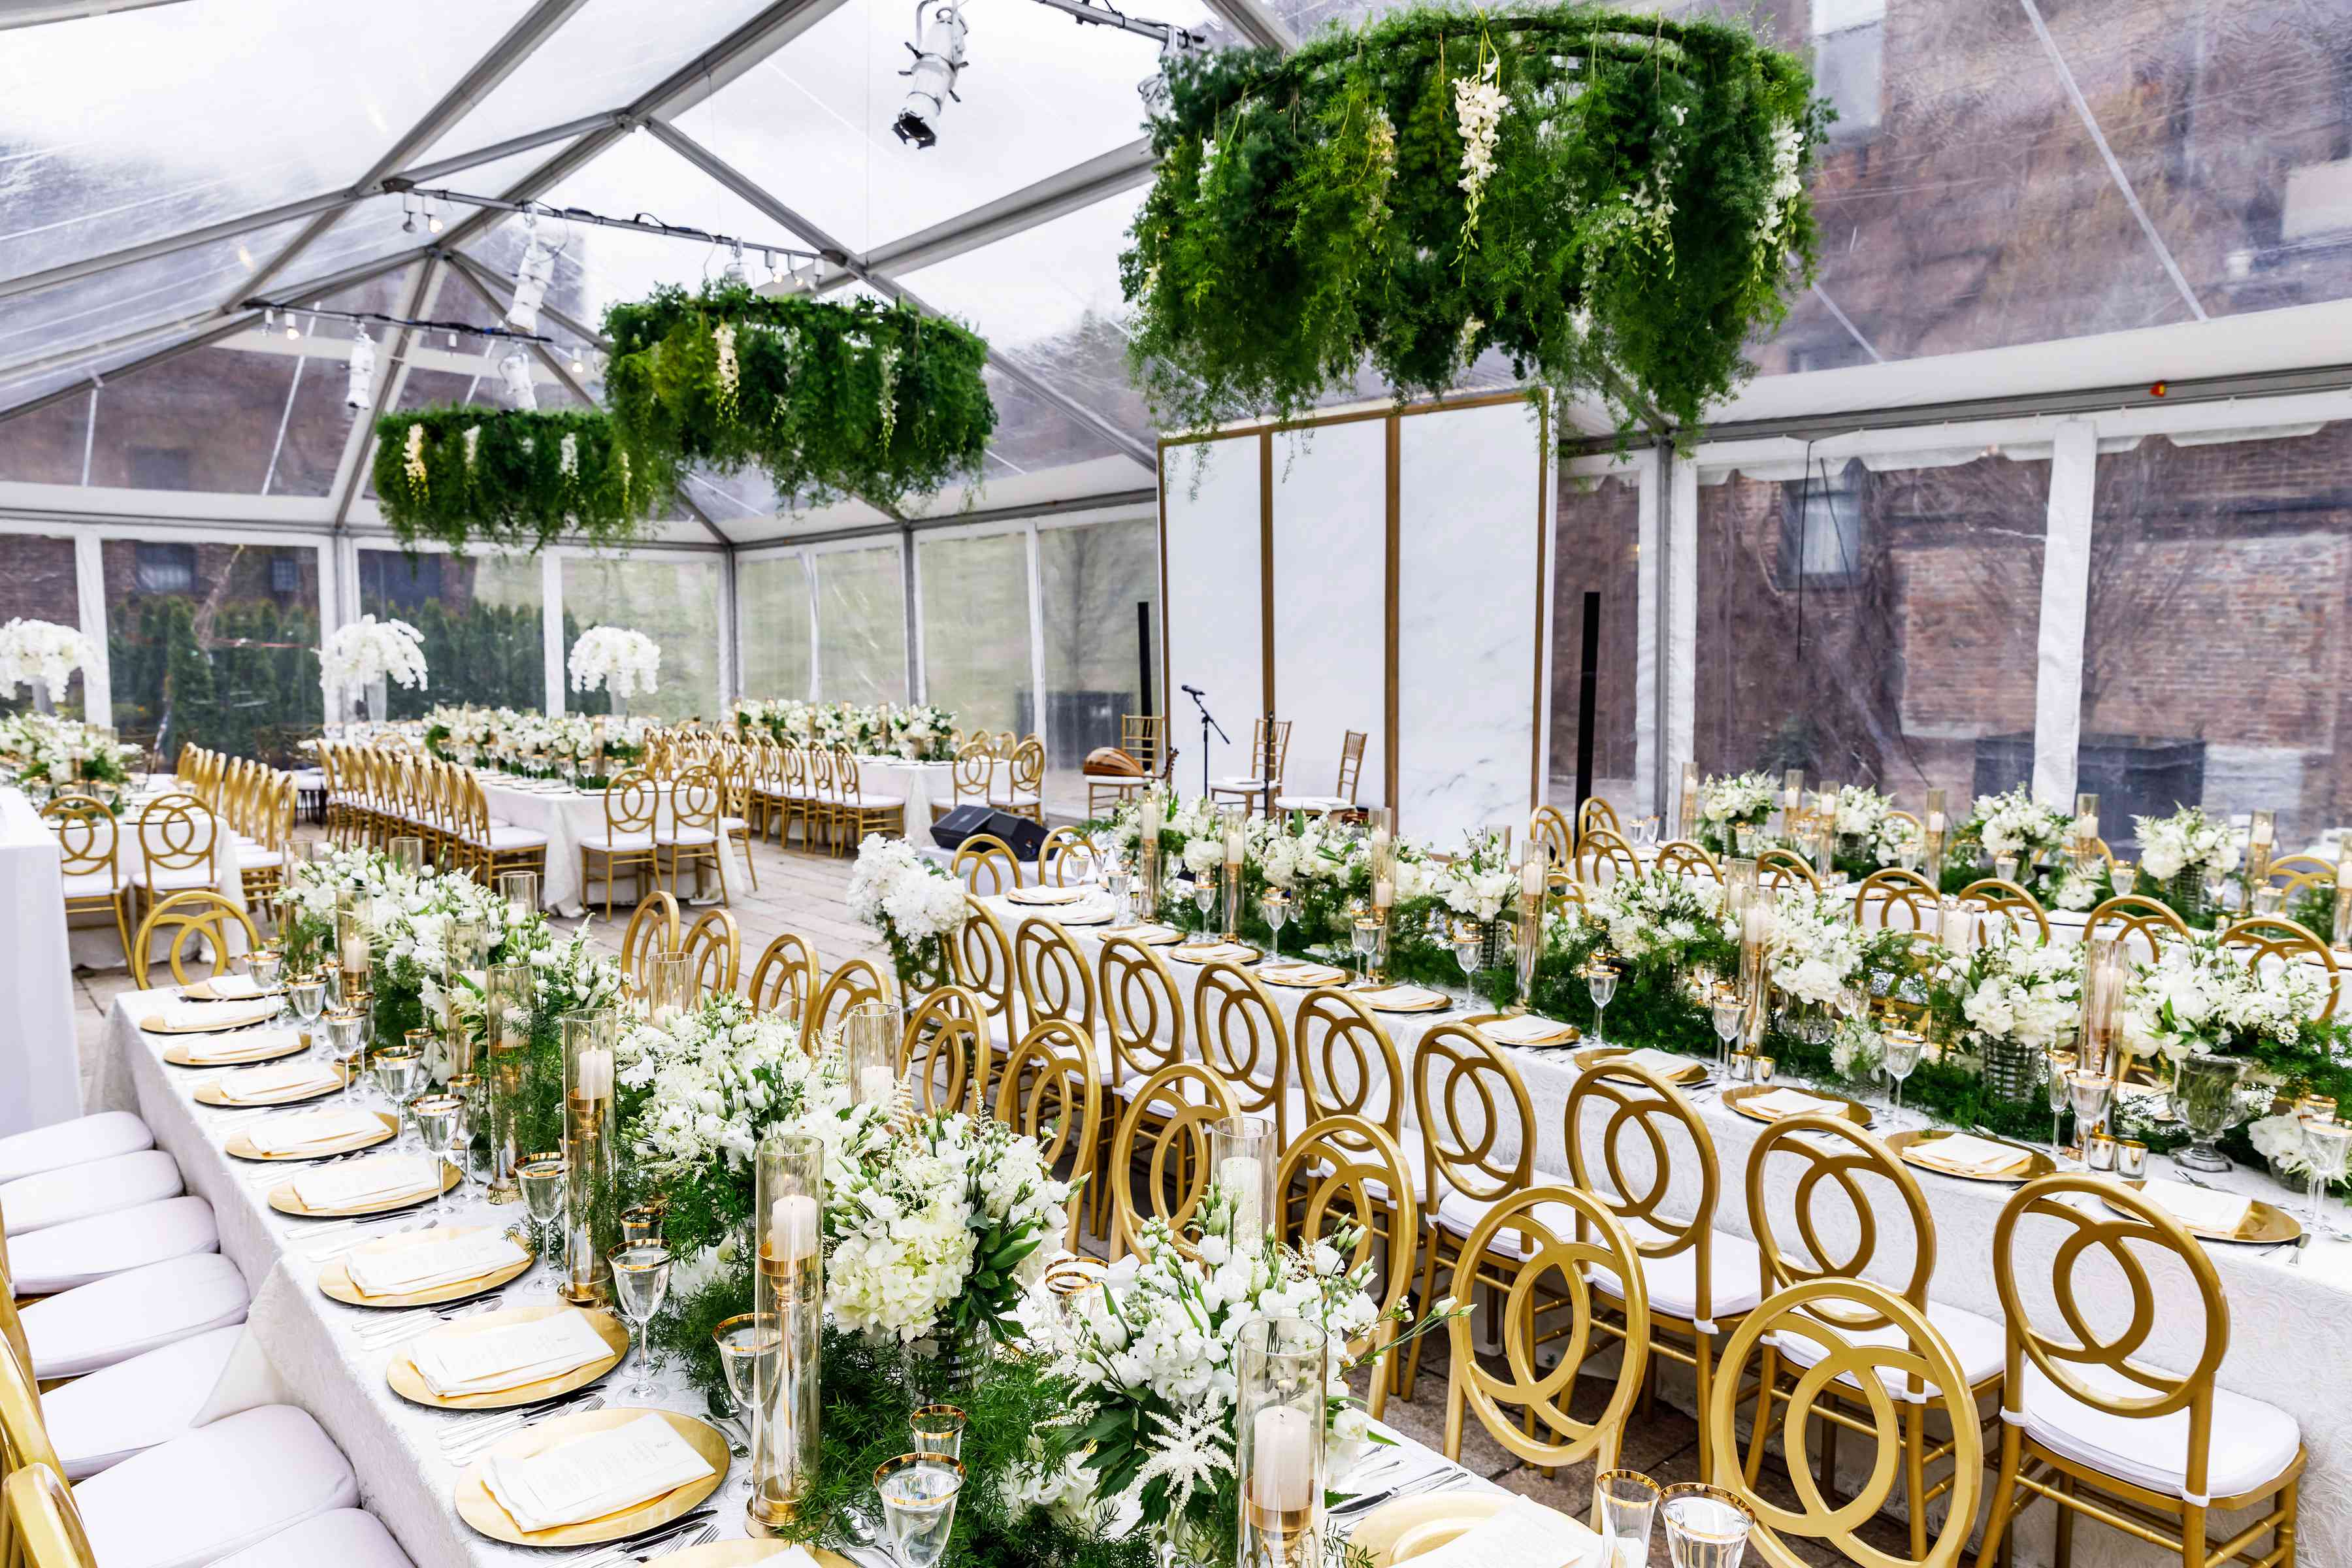 Top 5 Wedding Décor Rentals near me